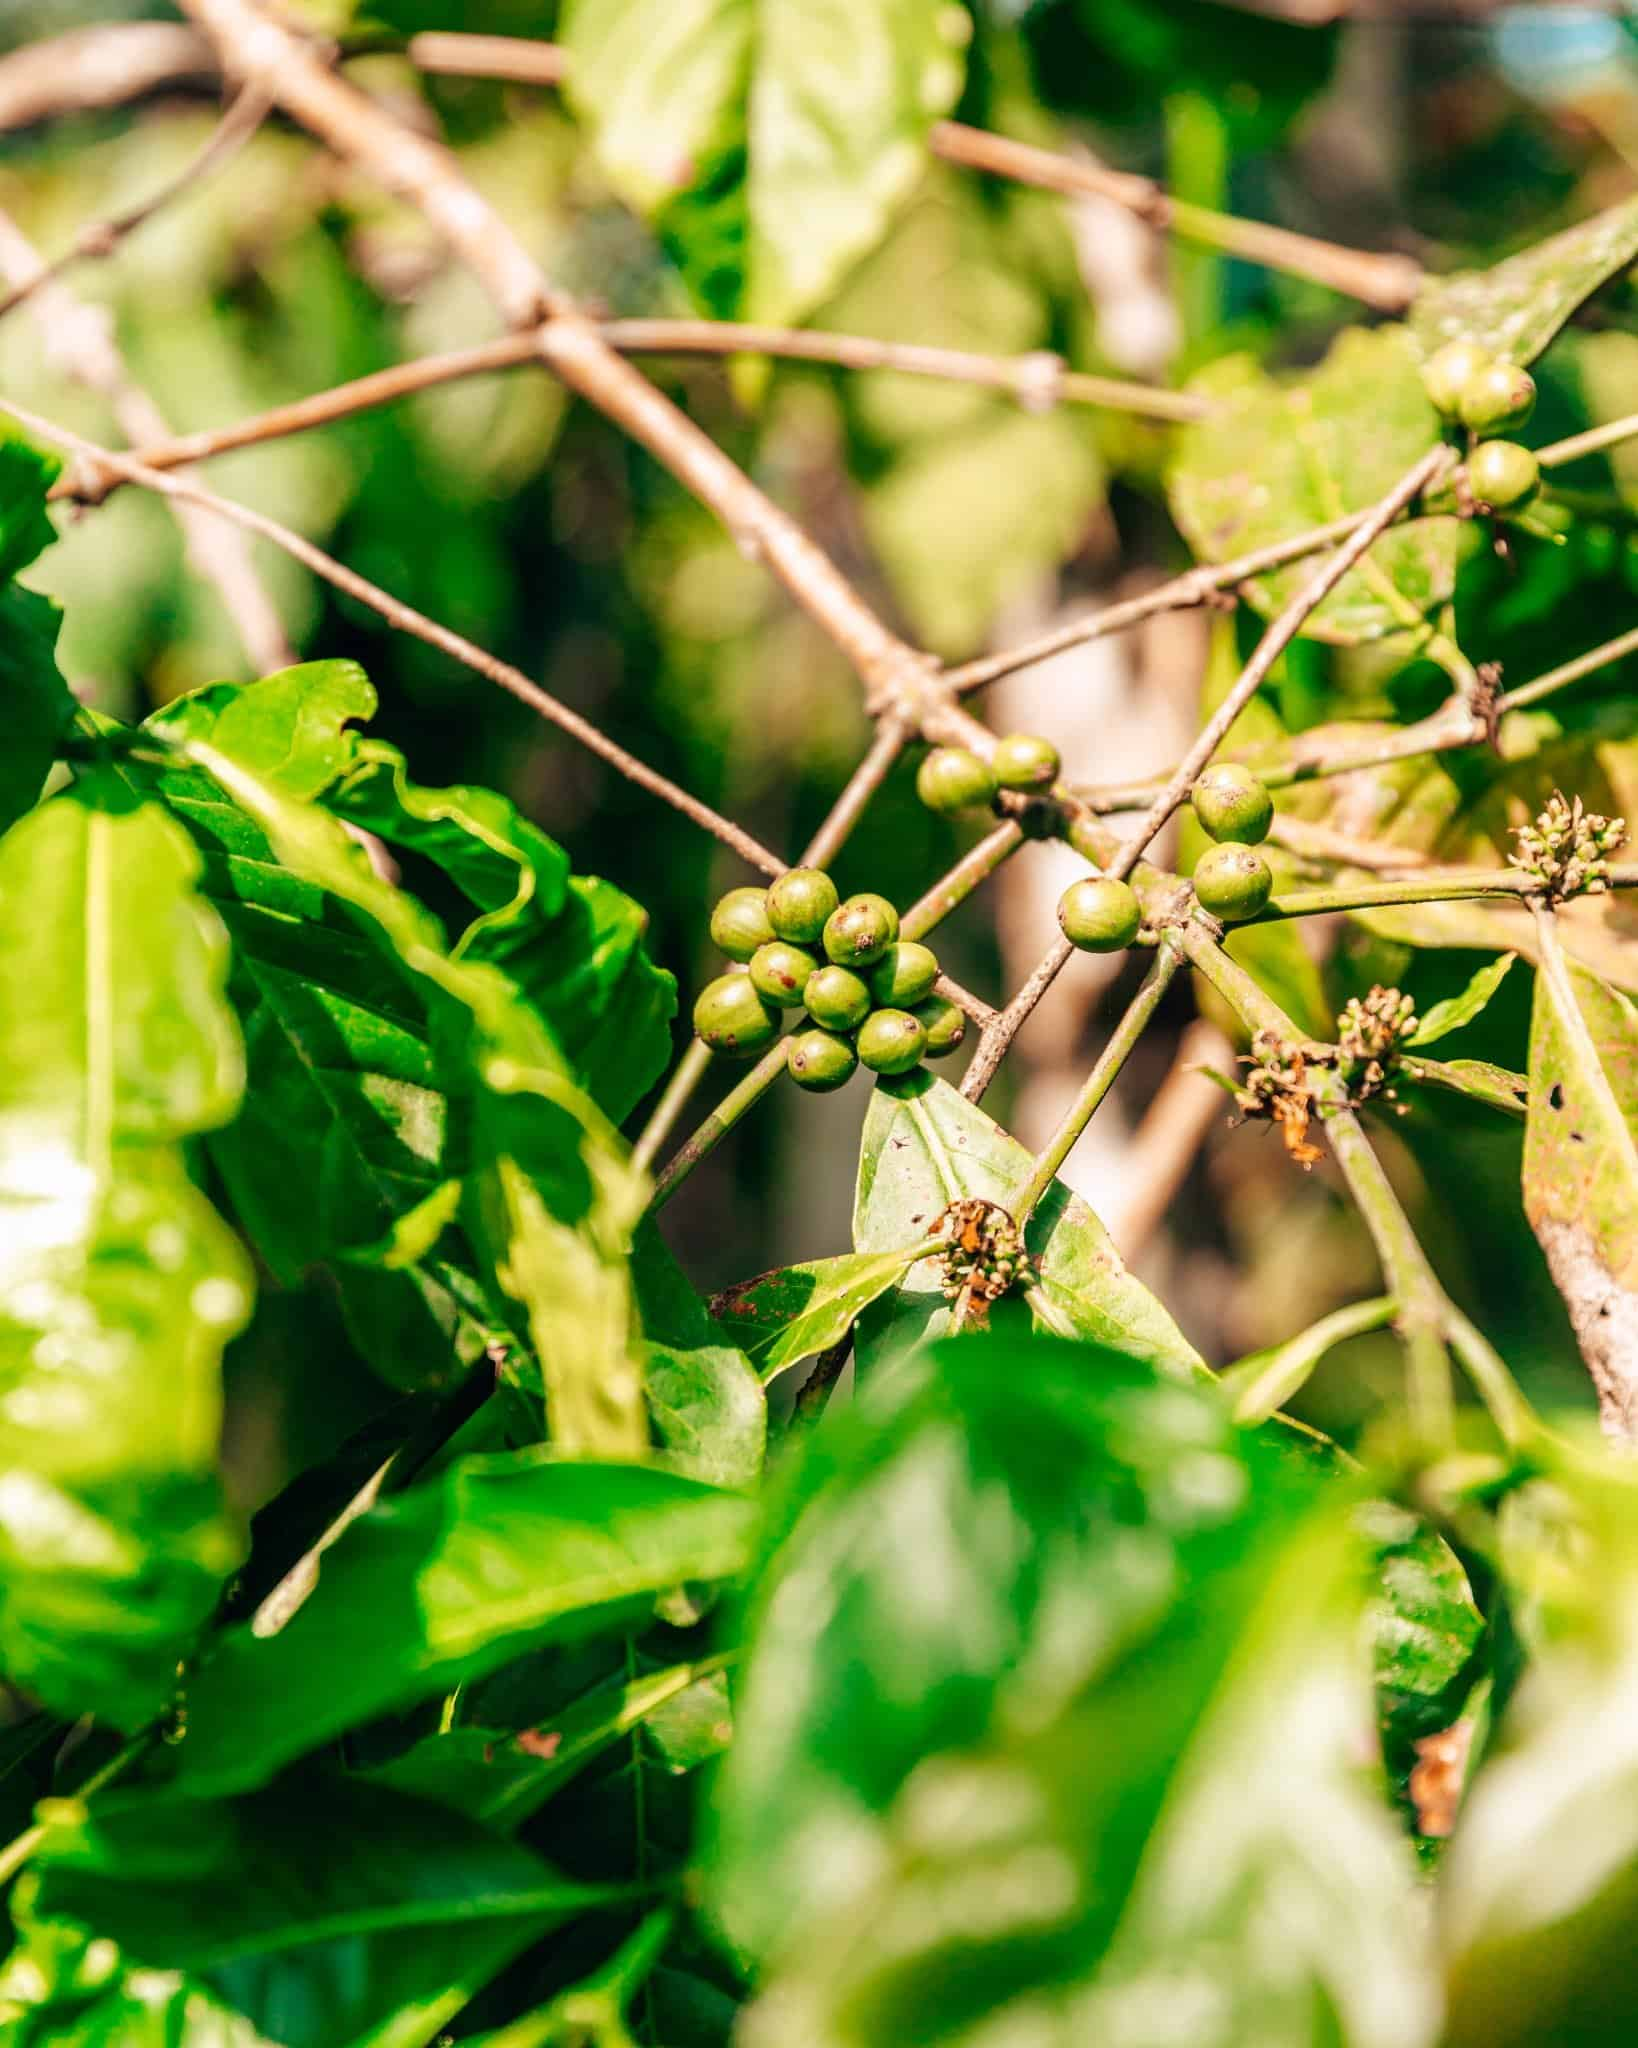 Coffee Plant at Munduk Moding Plantation Bali - The Next Trip